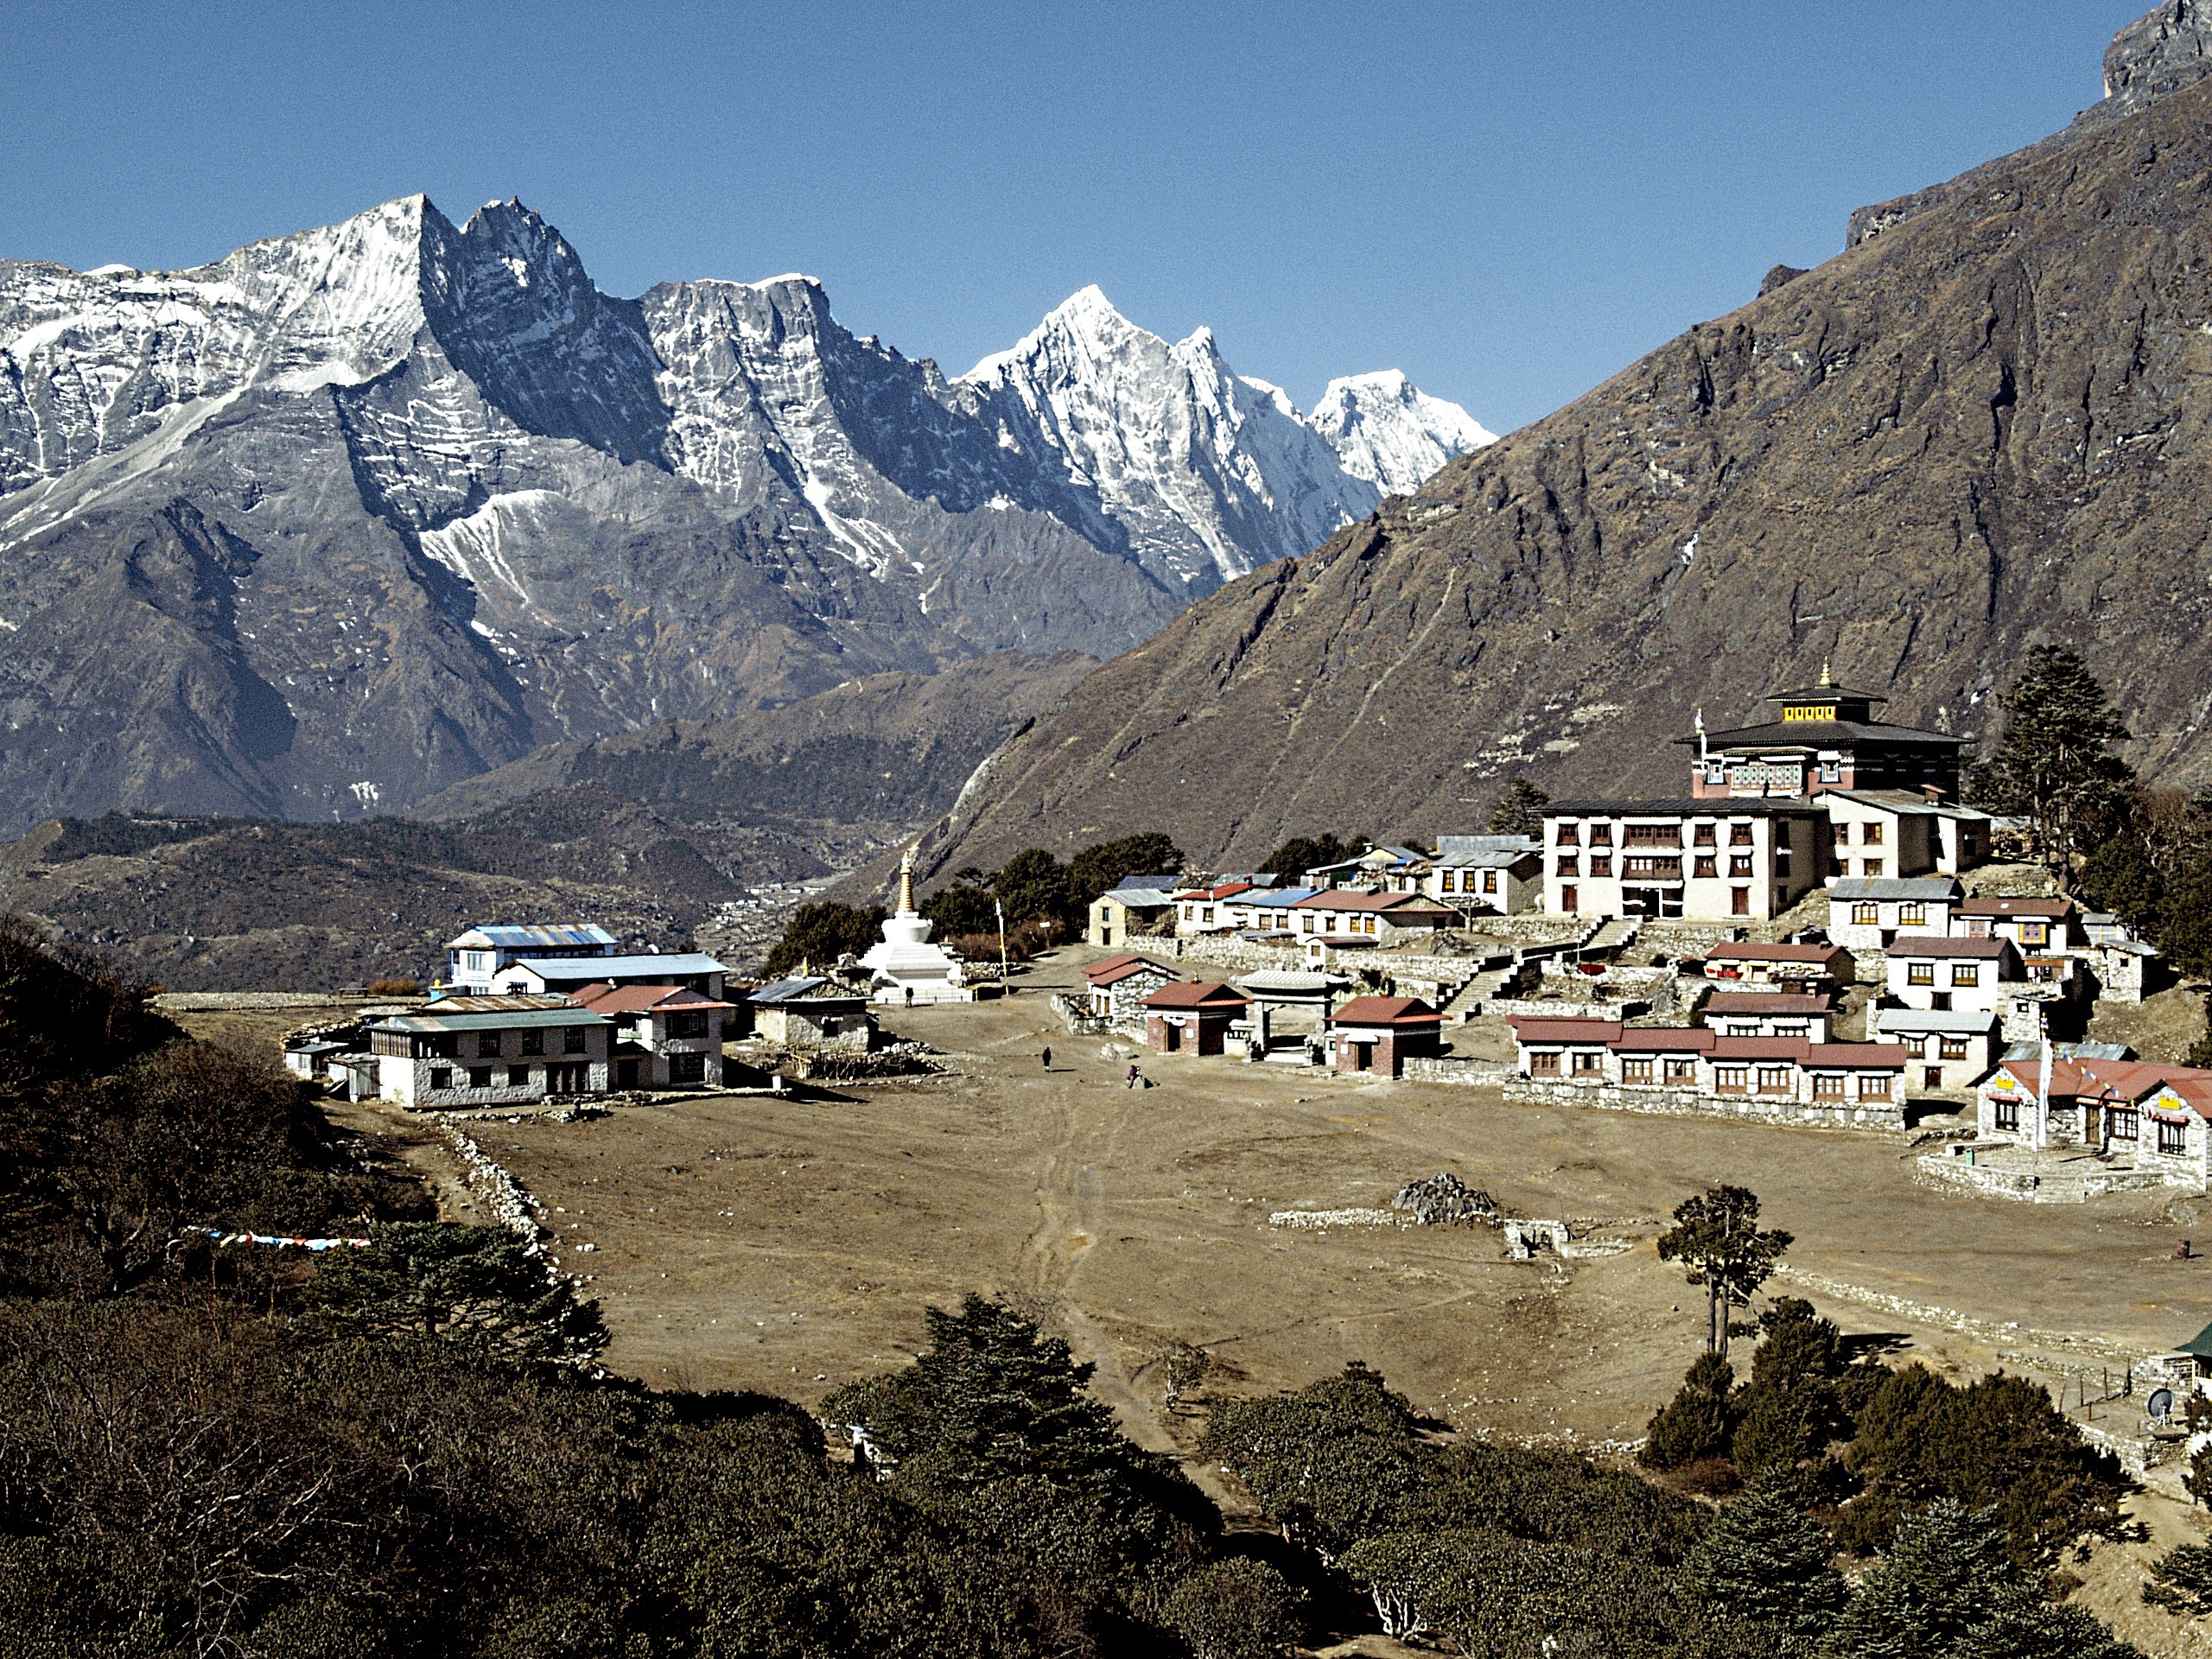 Thengboche and Lumding Himal